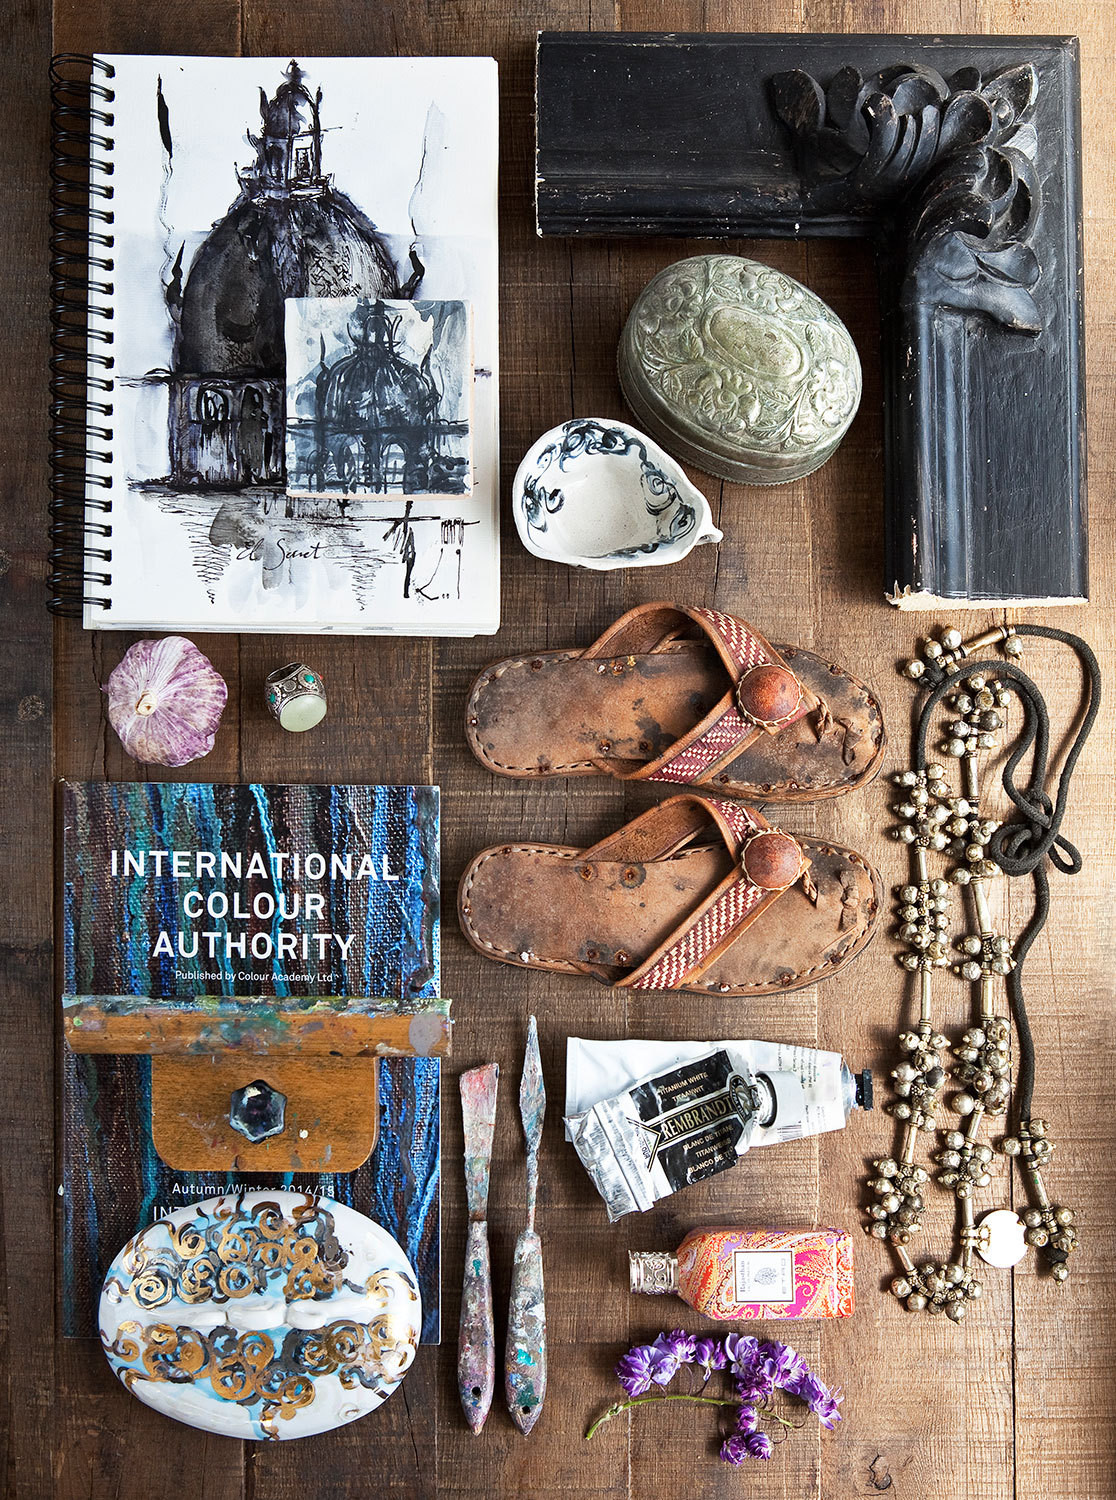 Small treasures picked up on Poch's extensive travels mingle with painted porcelain pieces, art supplies, and sketches.